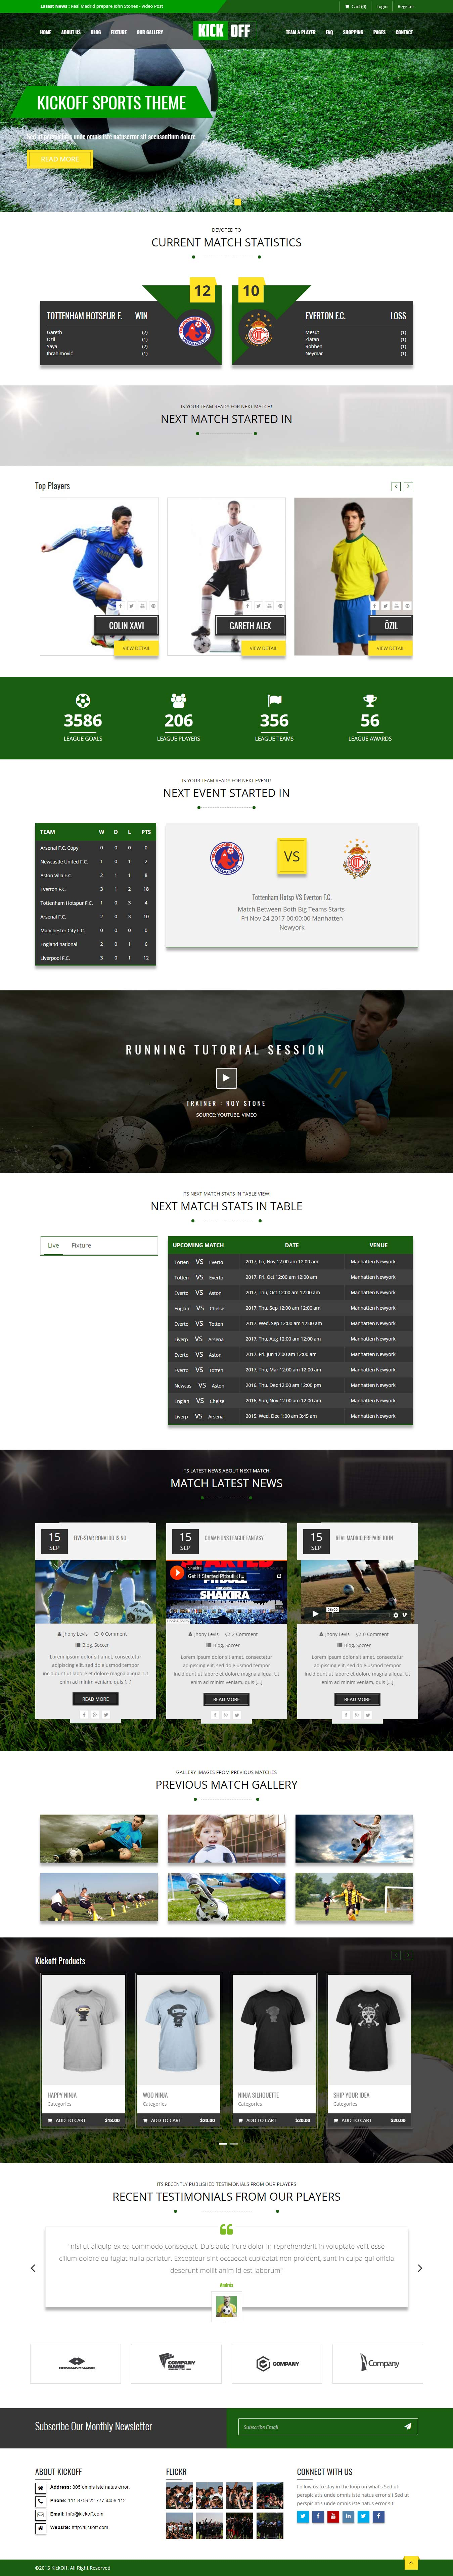 kickoff best premium sports wordpress theme - 10+ Best Premium Sports WordPress Themes